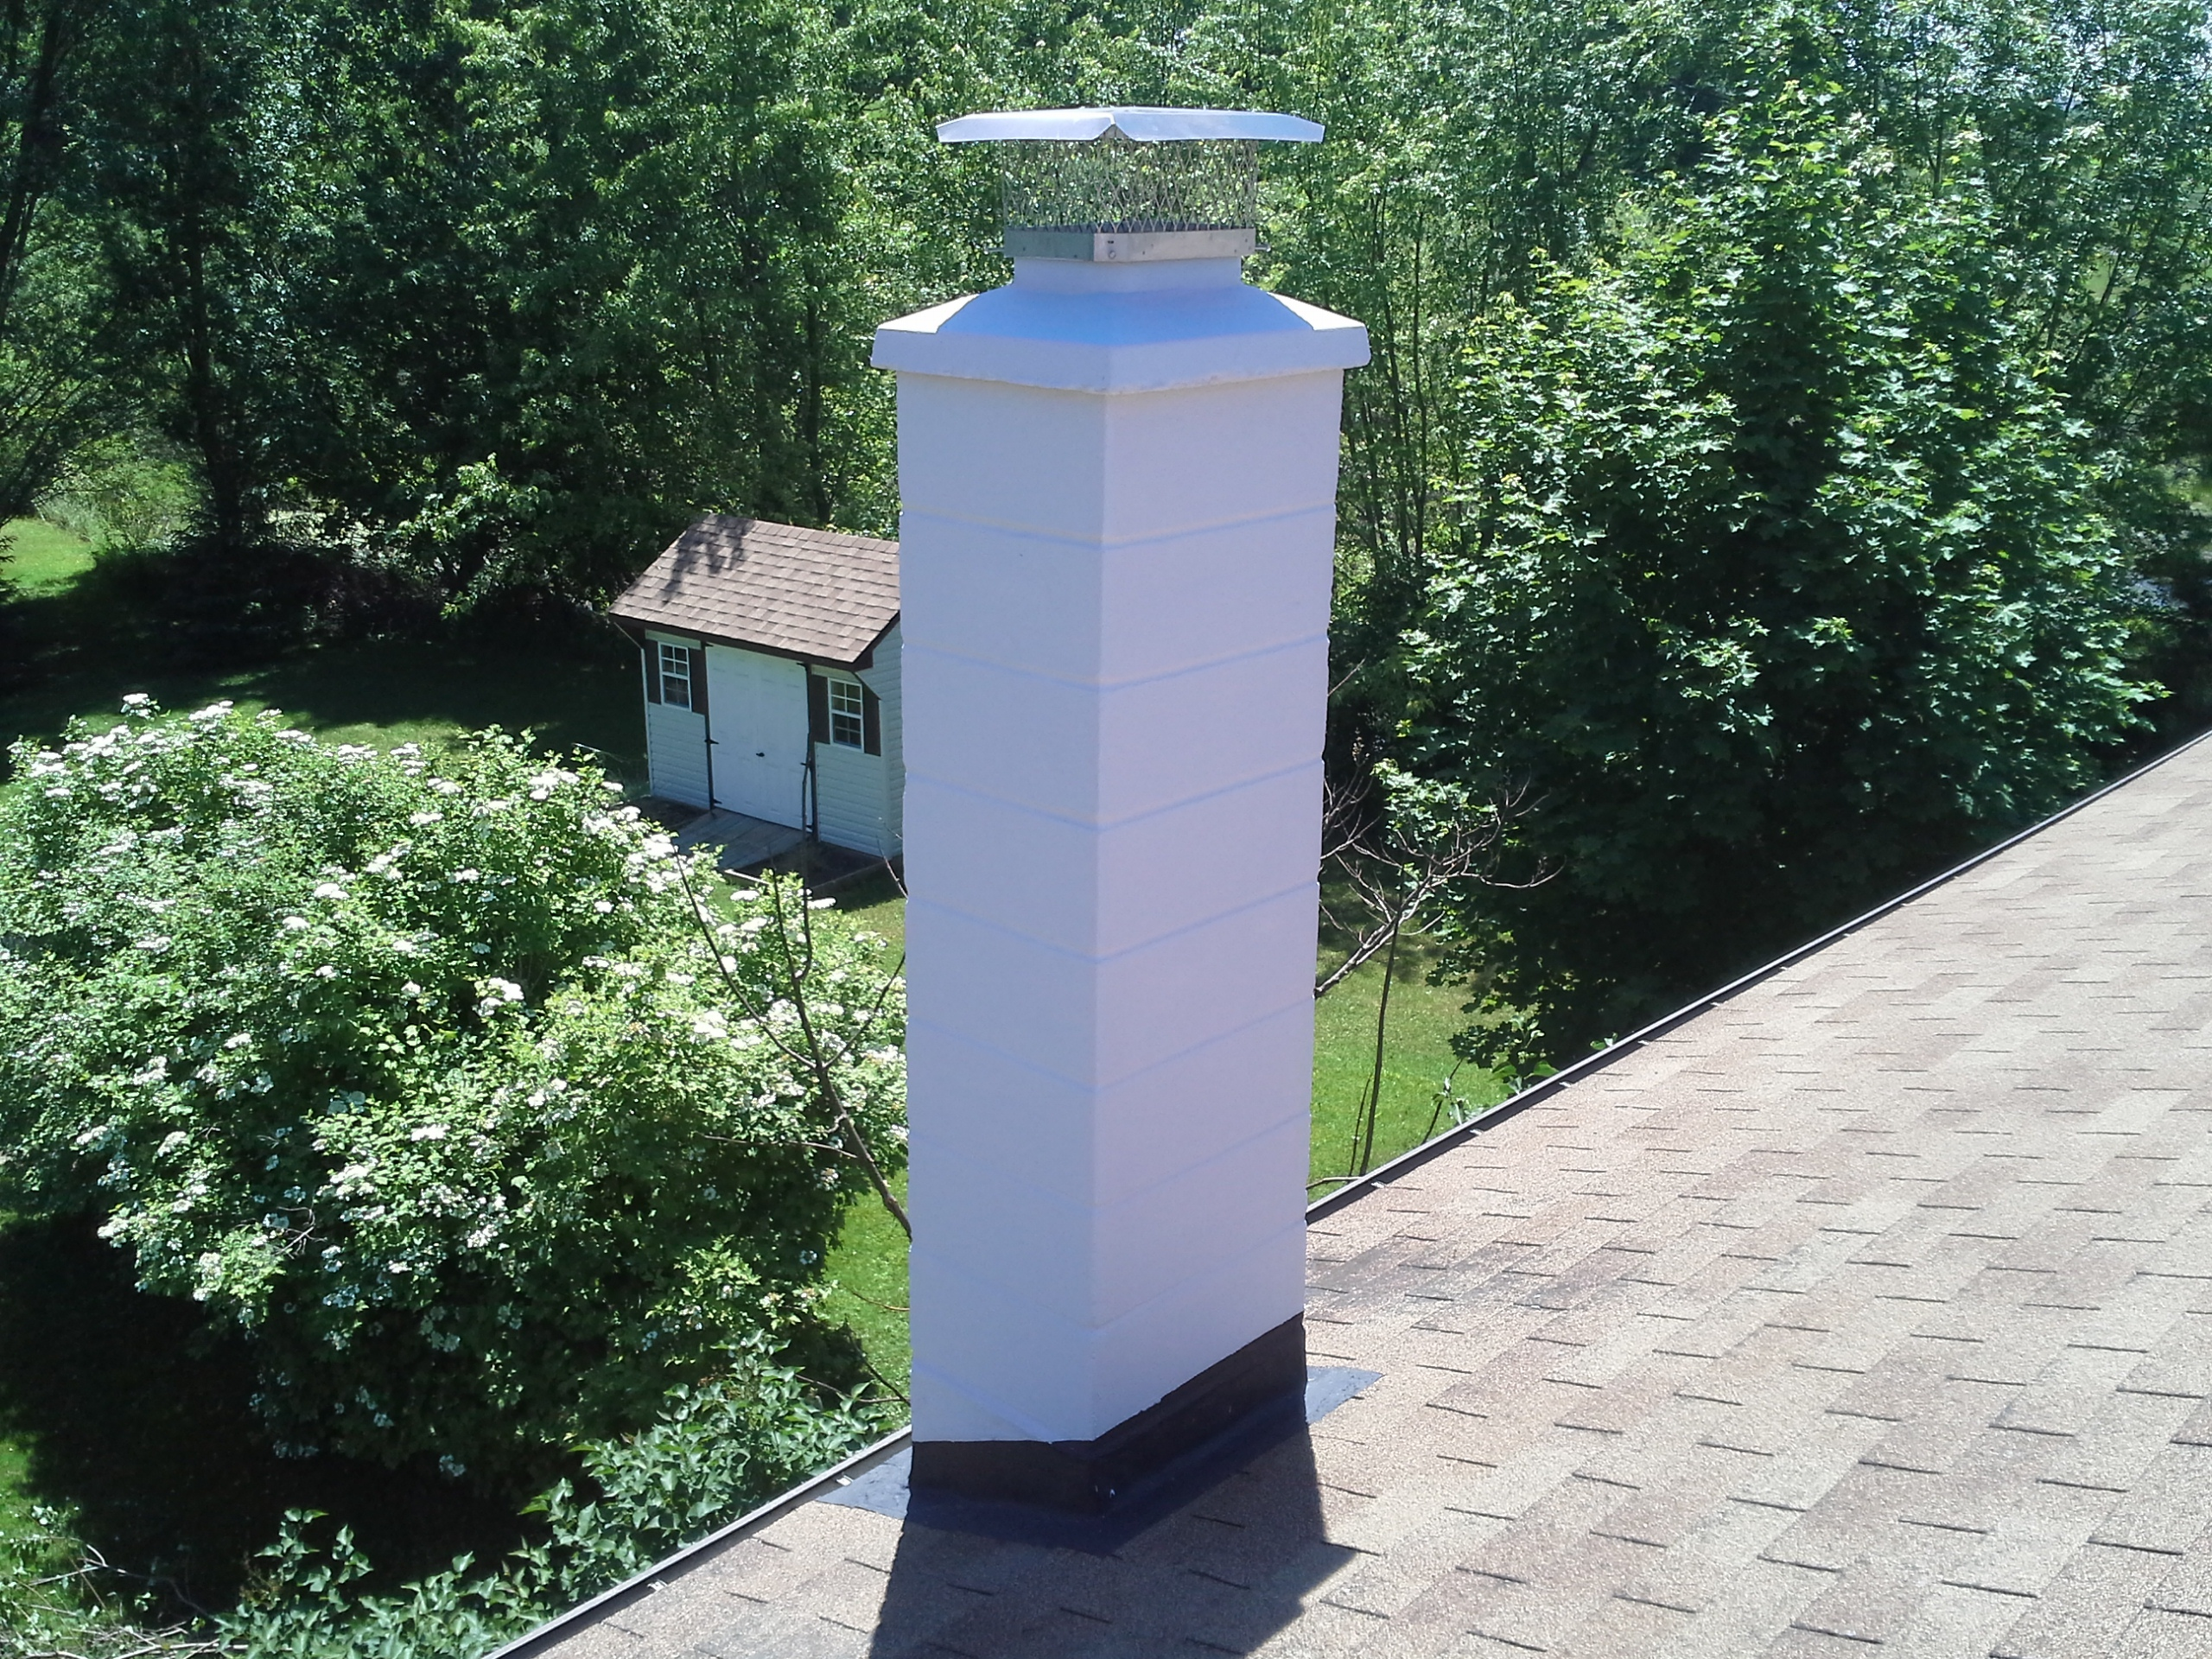 Chimney Installations Eaton Ny Cny Chimney Installations